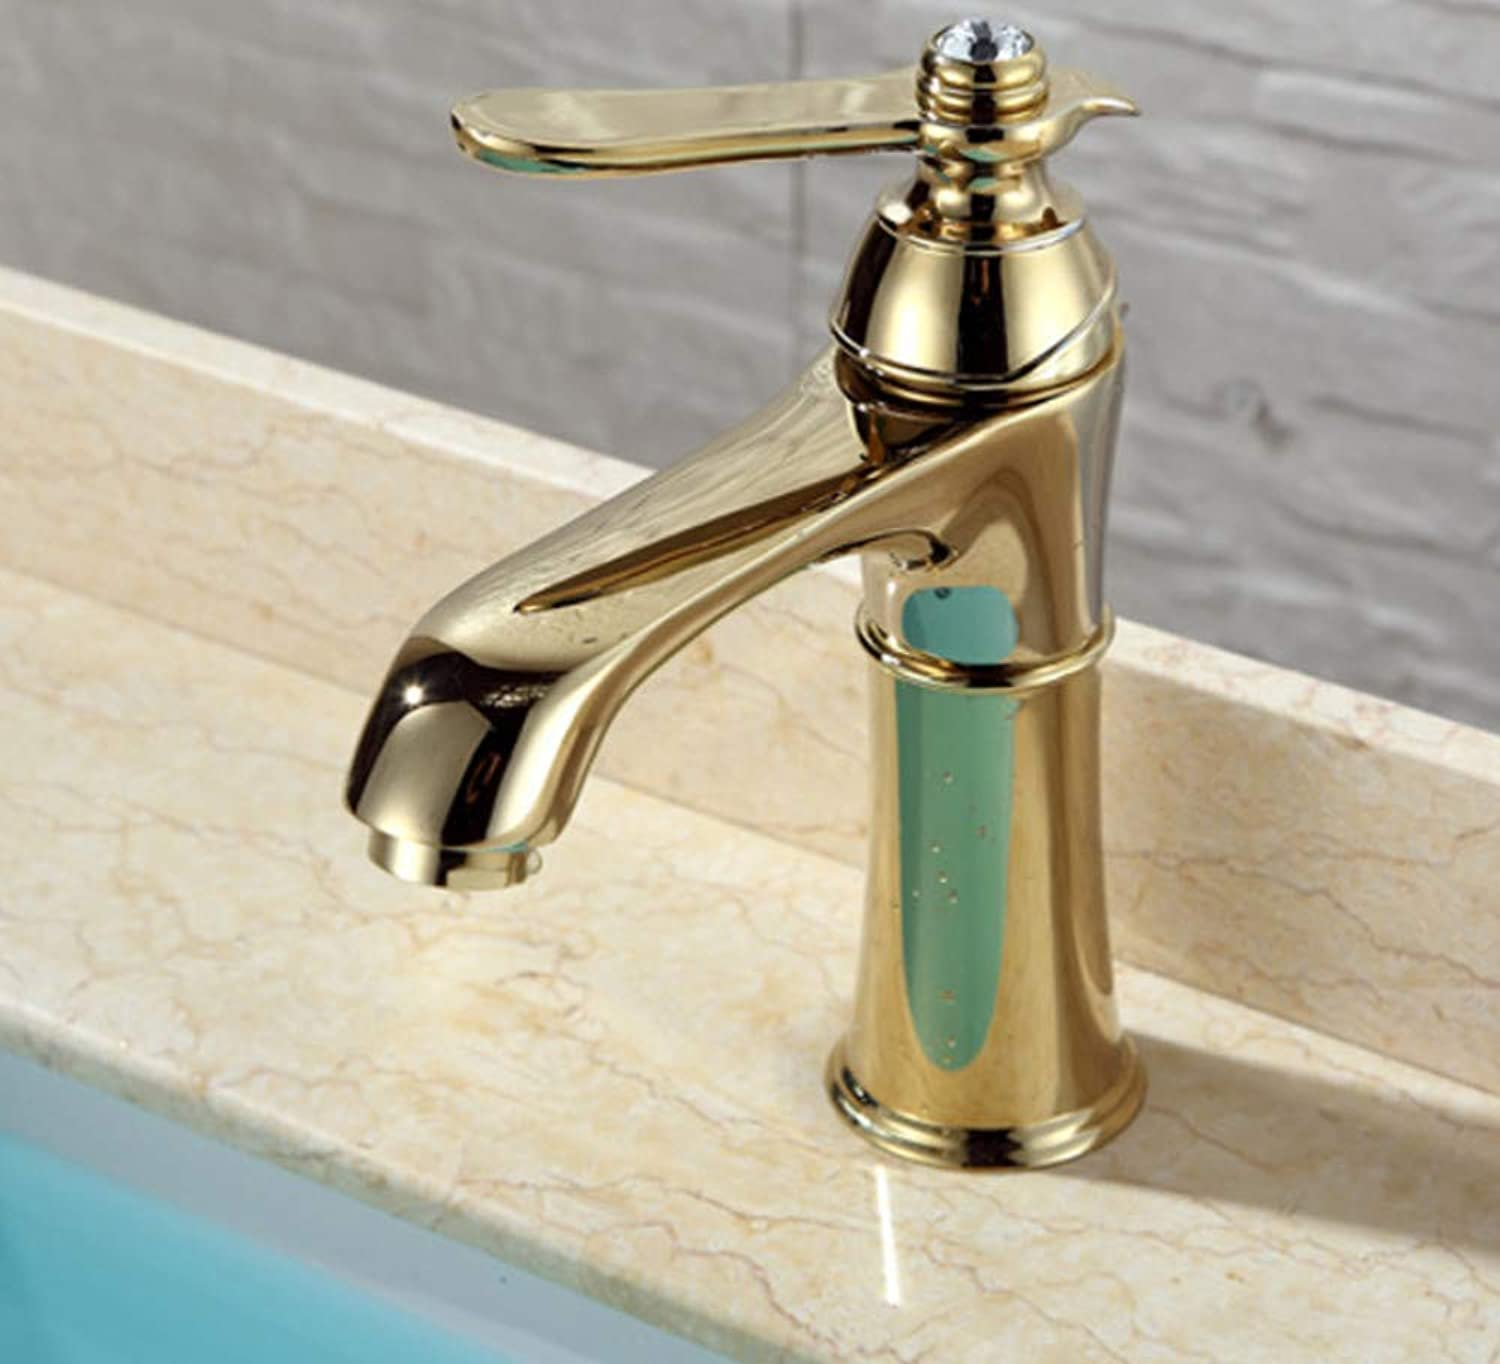 redOOY Diy Bathroom Sink Taps Taps Faucet gold Copper Bathroom Washbasin Kitchen Bathroom Hot And Cold Single Hole Wash Basin Basin Bathroom Faucet